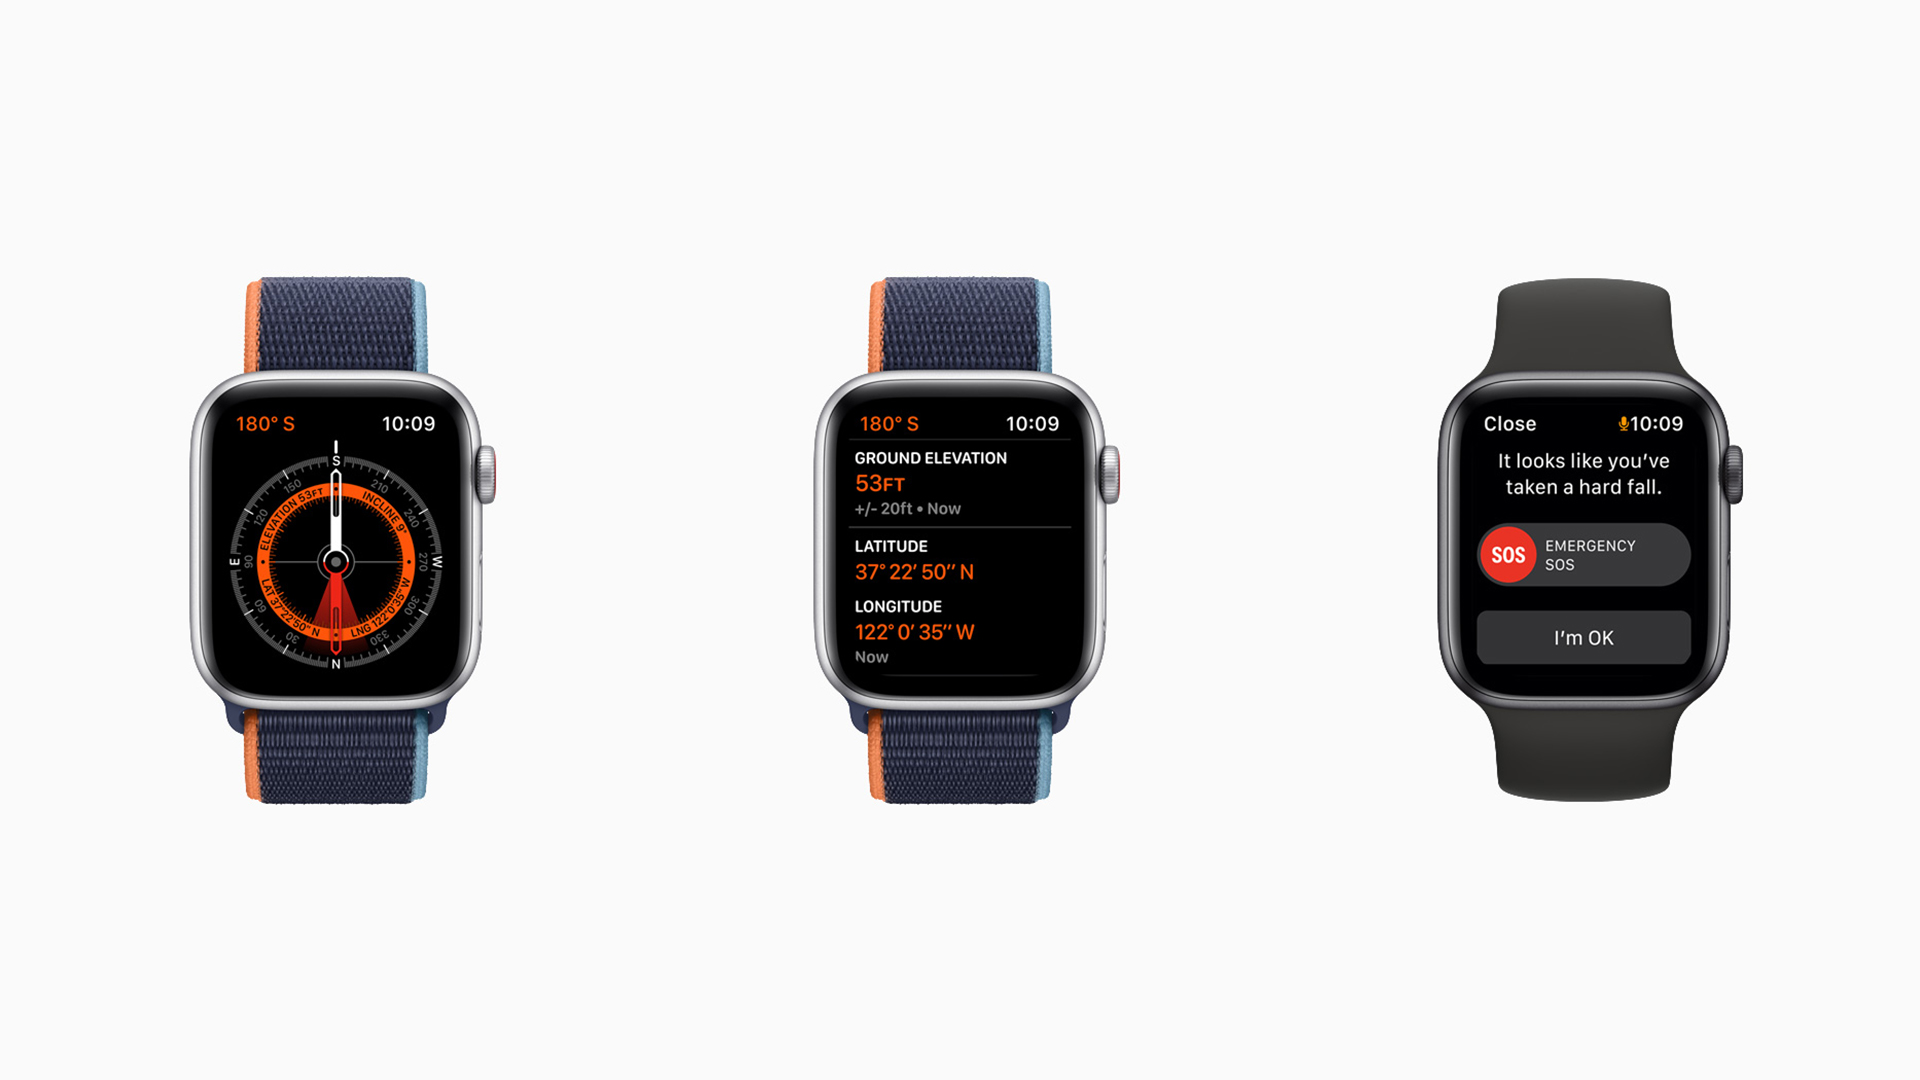 Apple Watch SE Always On Altimeter Compass Fall Detection